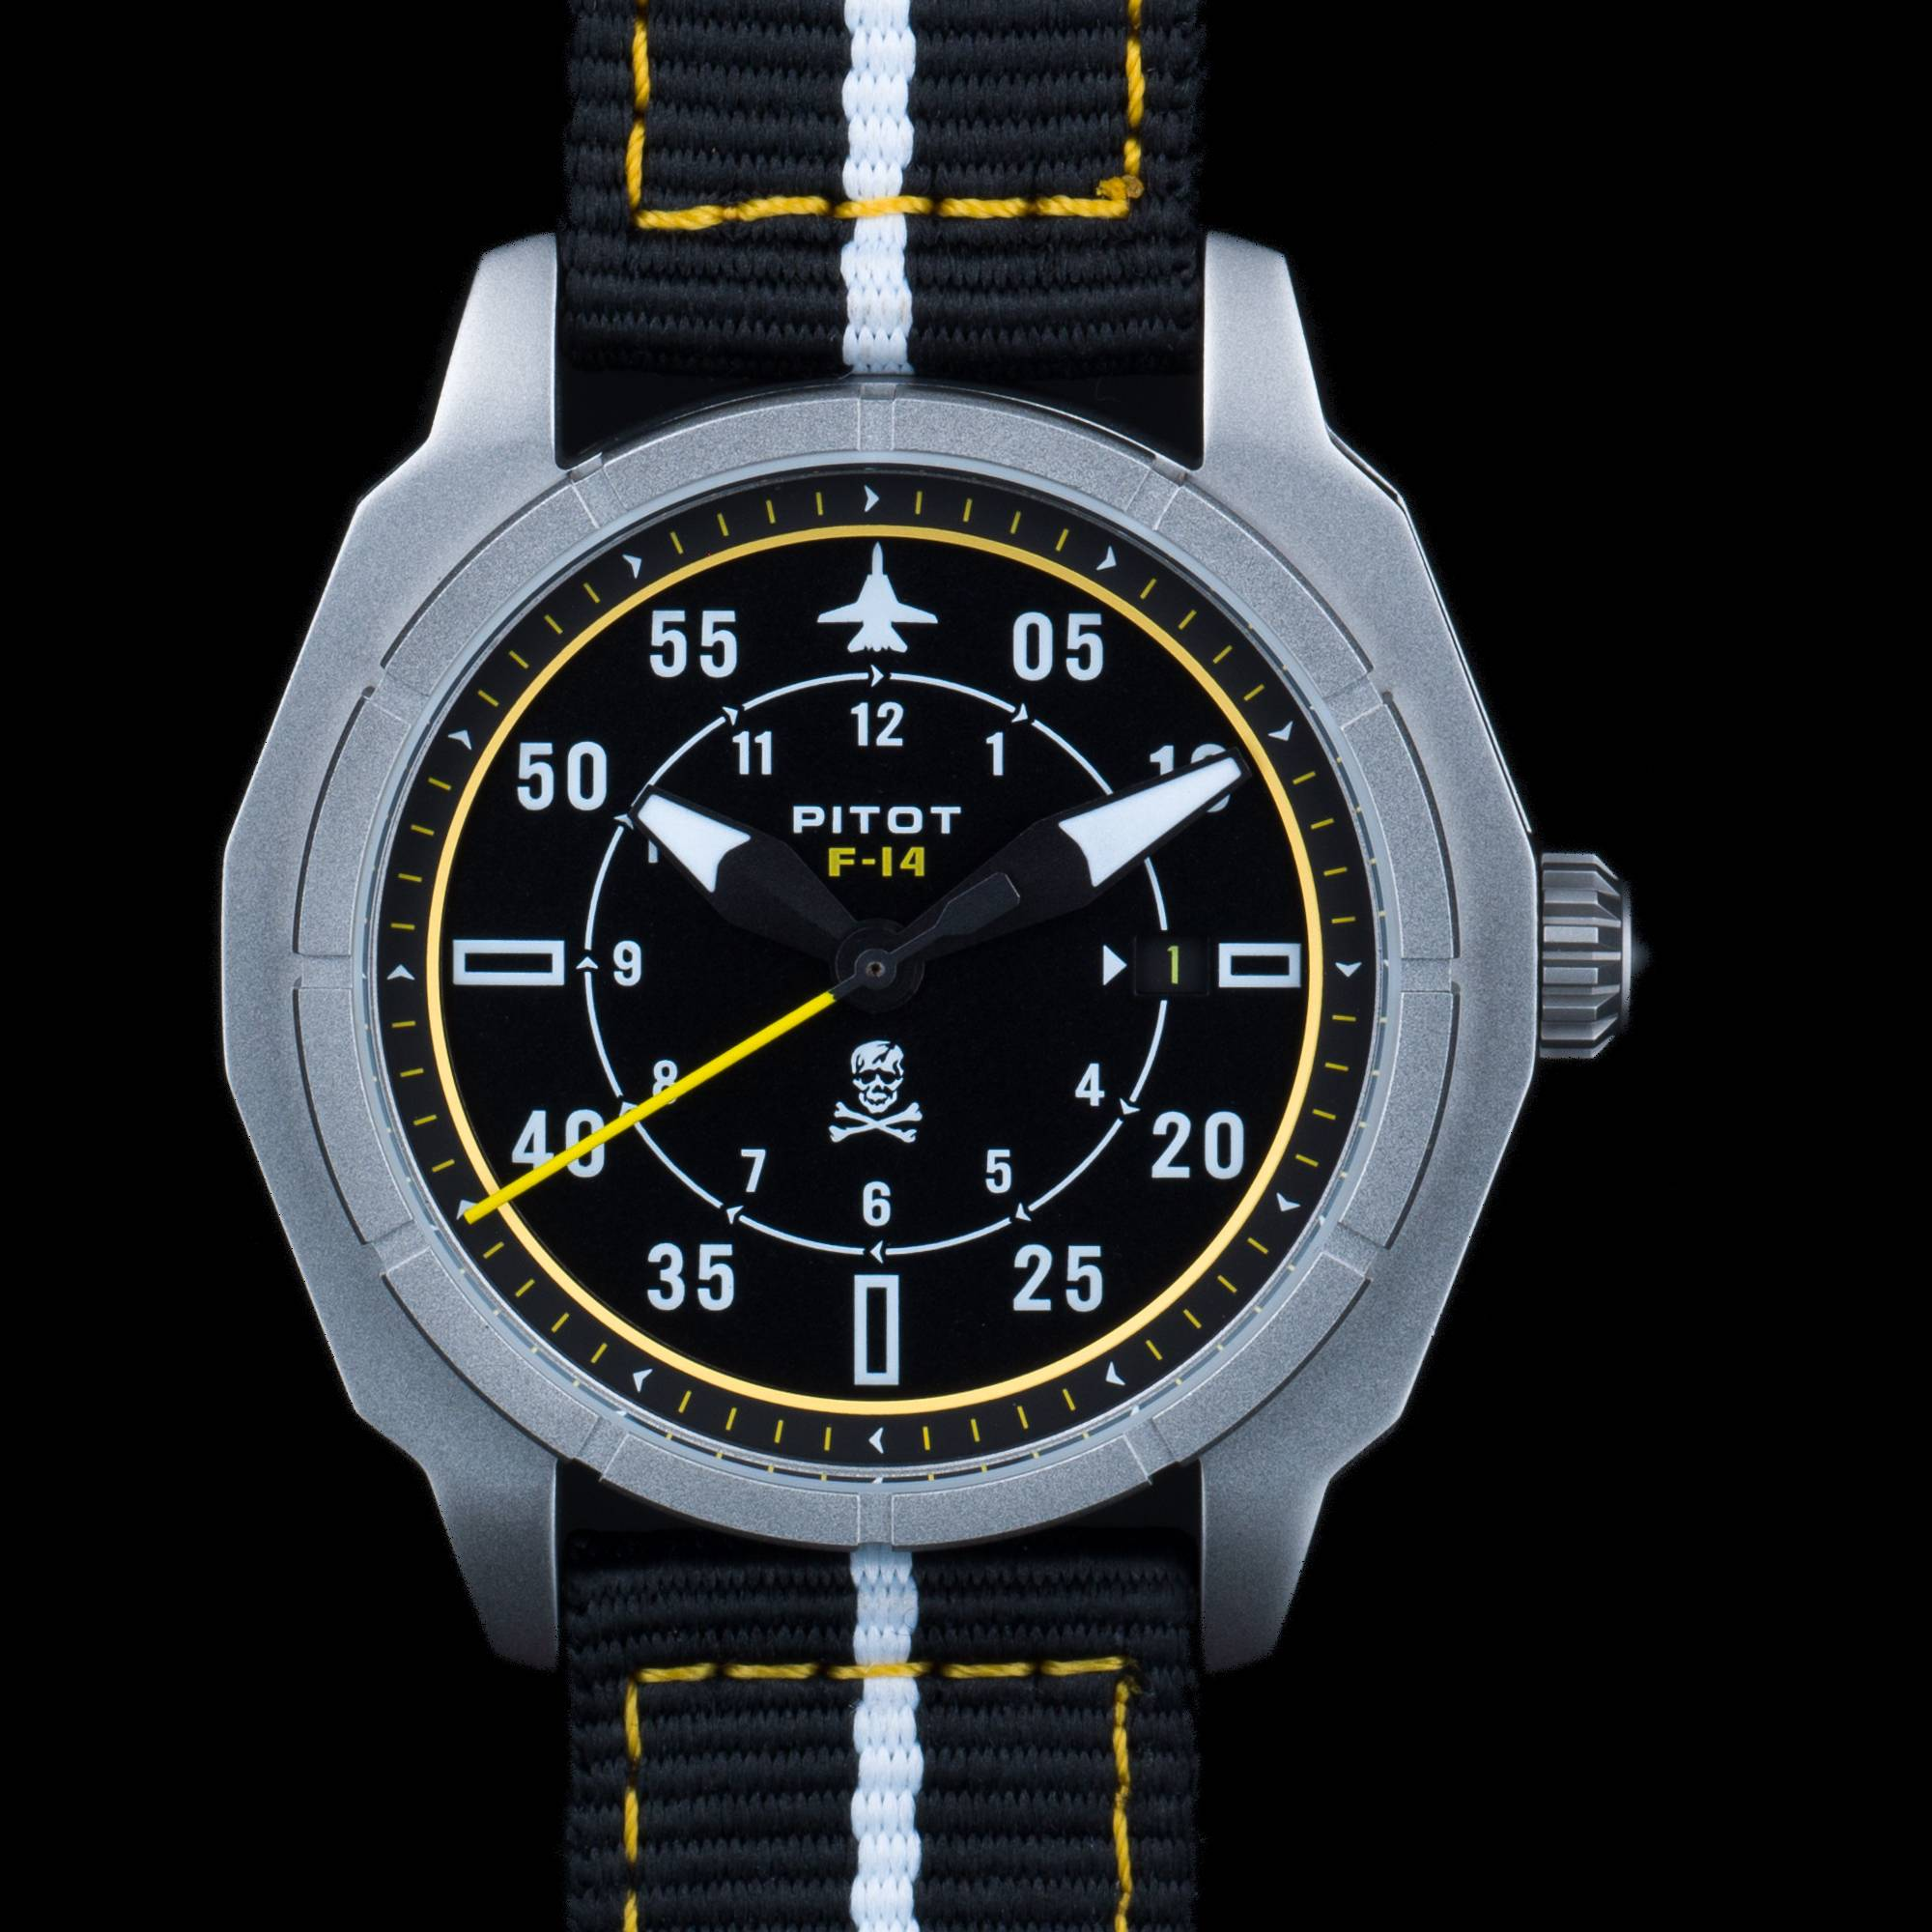 F-14 watches in stock May 1, 2021